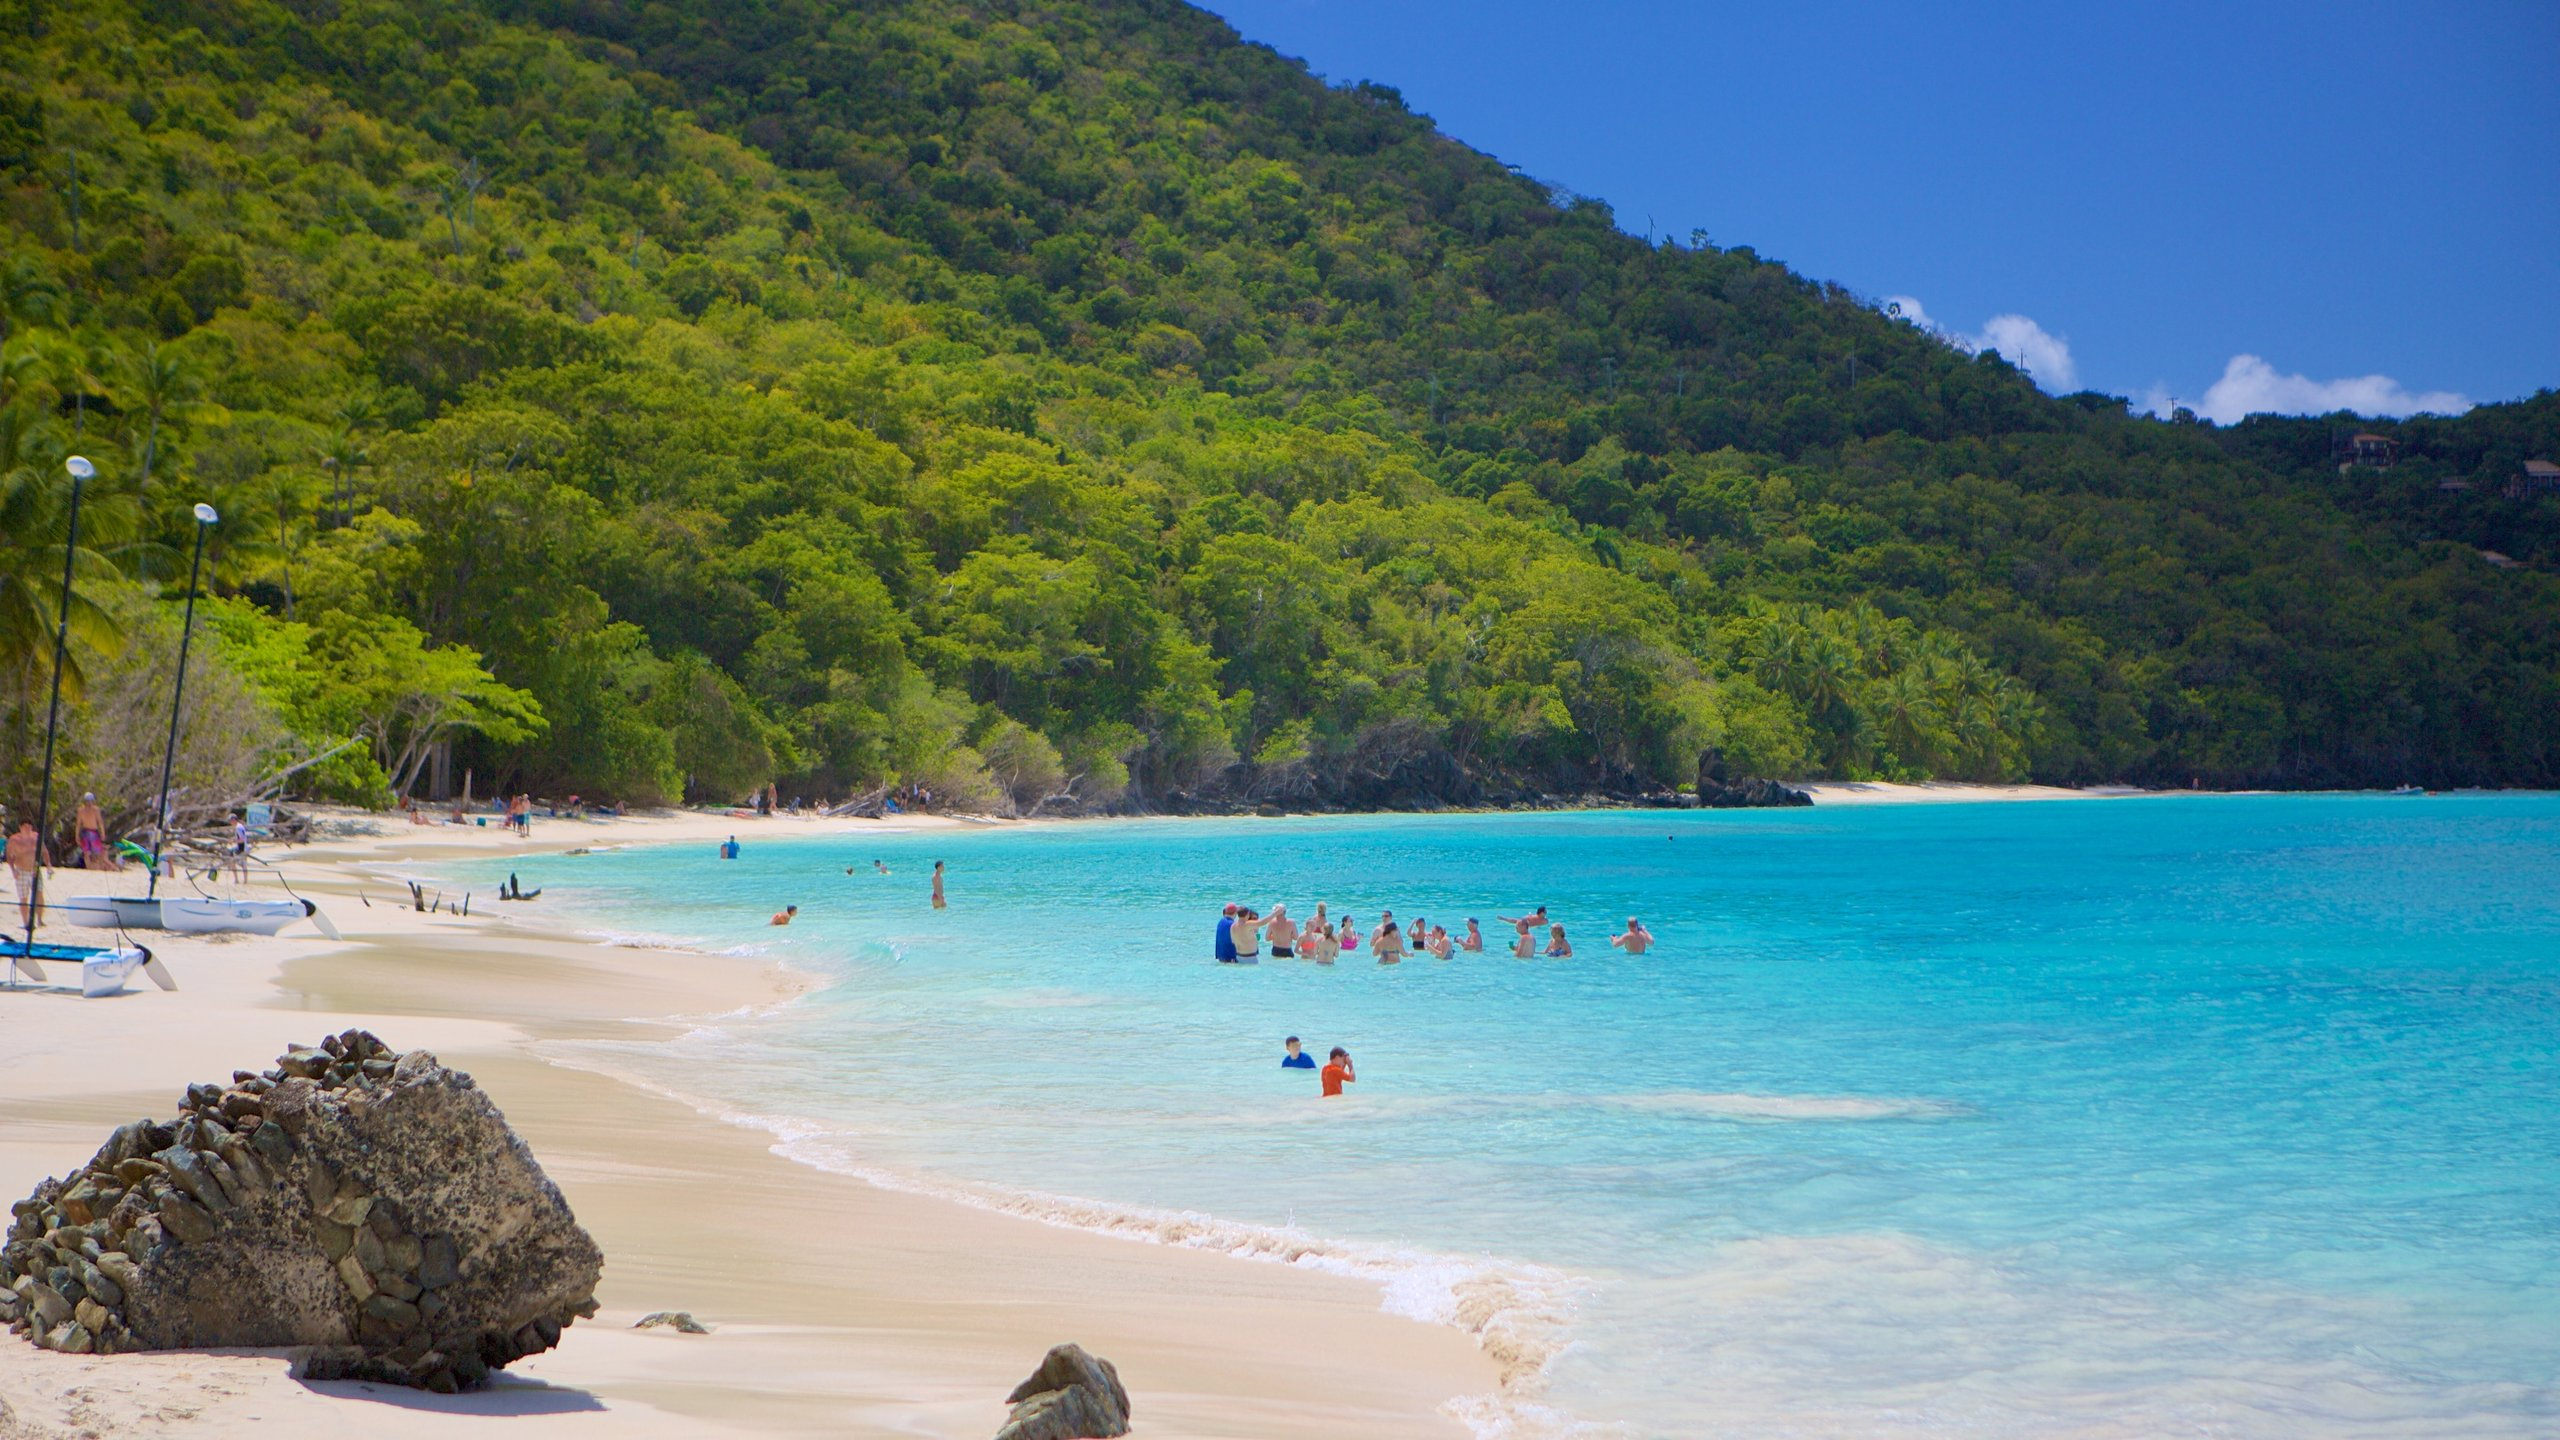 See interesting fish and coral as you snorkel in the pristine waters off this beautiful bay, which is also home to plantation ruins that shed light on St. John's past.